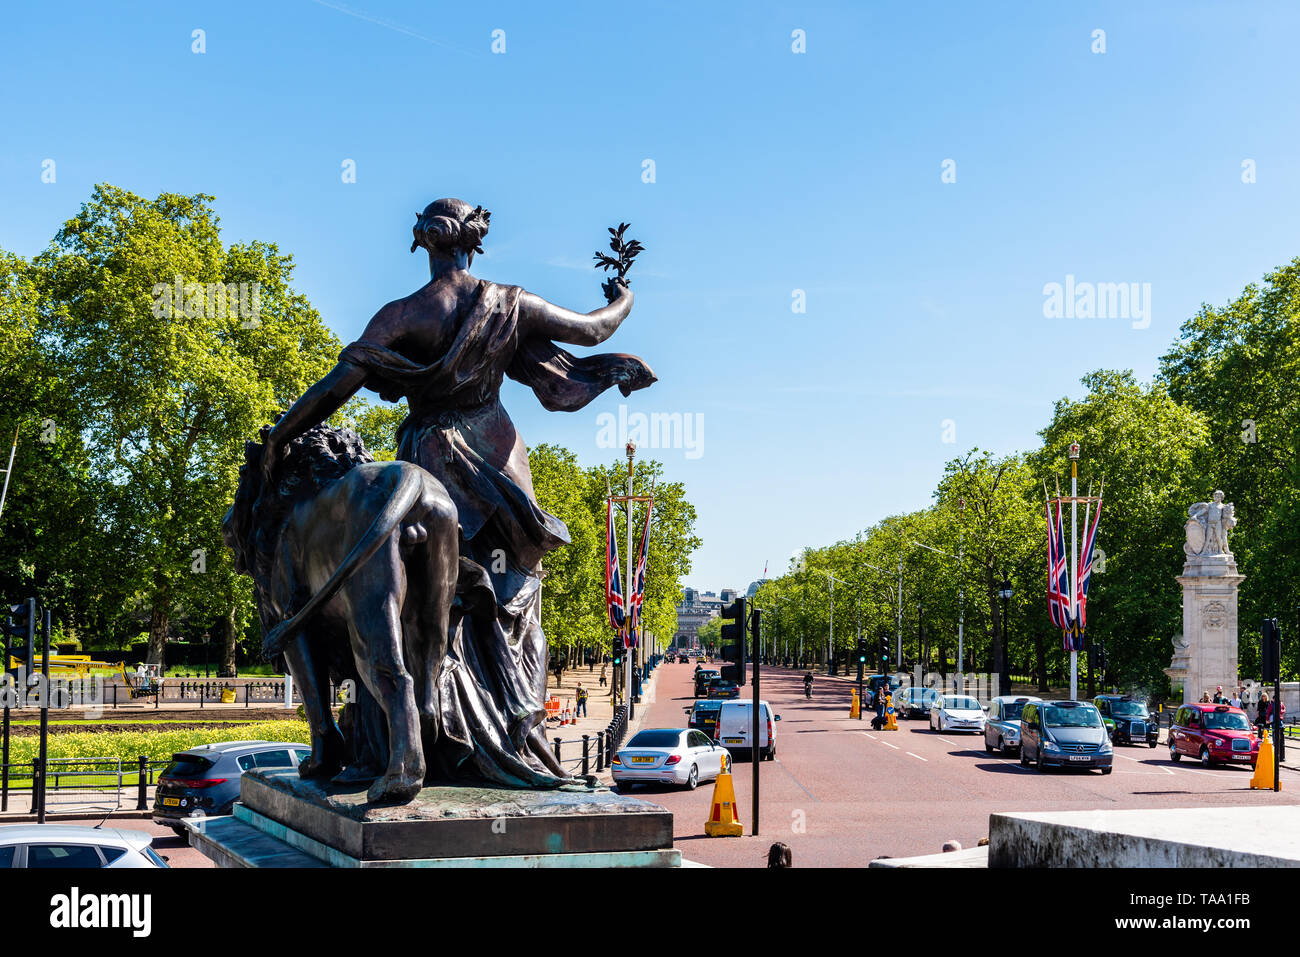 London, UK - May 14, 2019:  Victoria Memorial Sculpture in front of Buckingham Palace a sunny day against The Mall Road Stock Photo